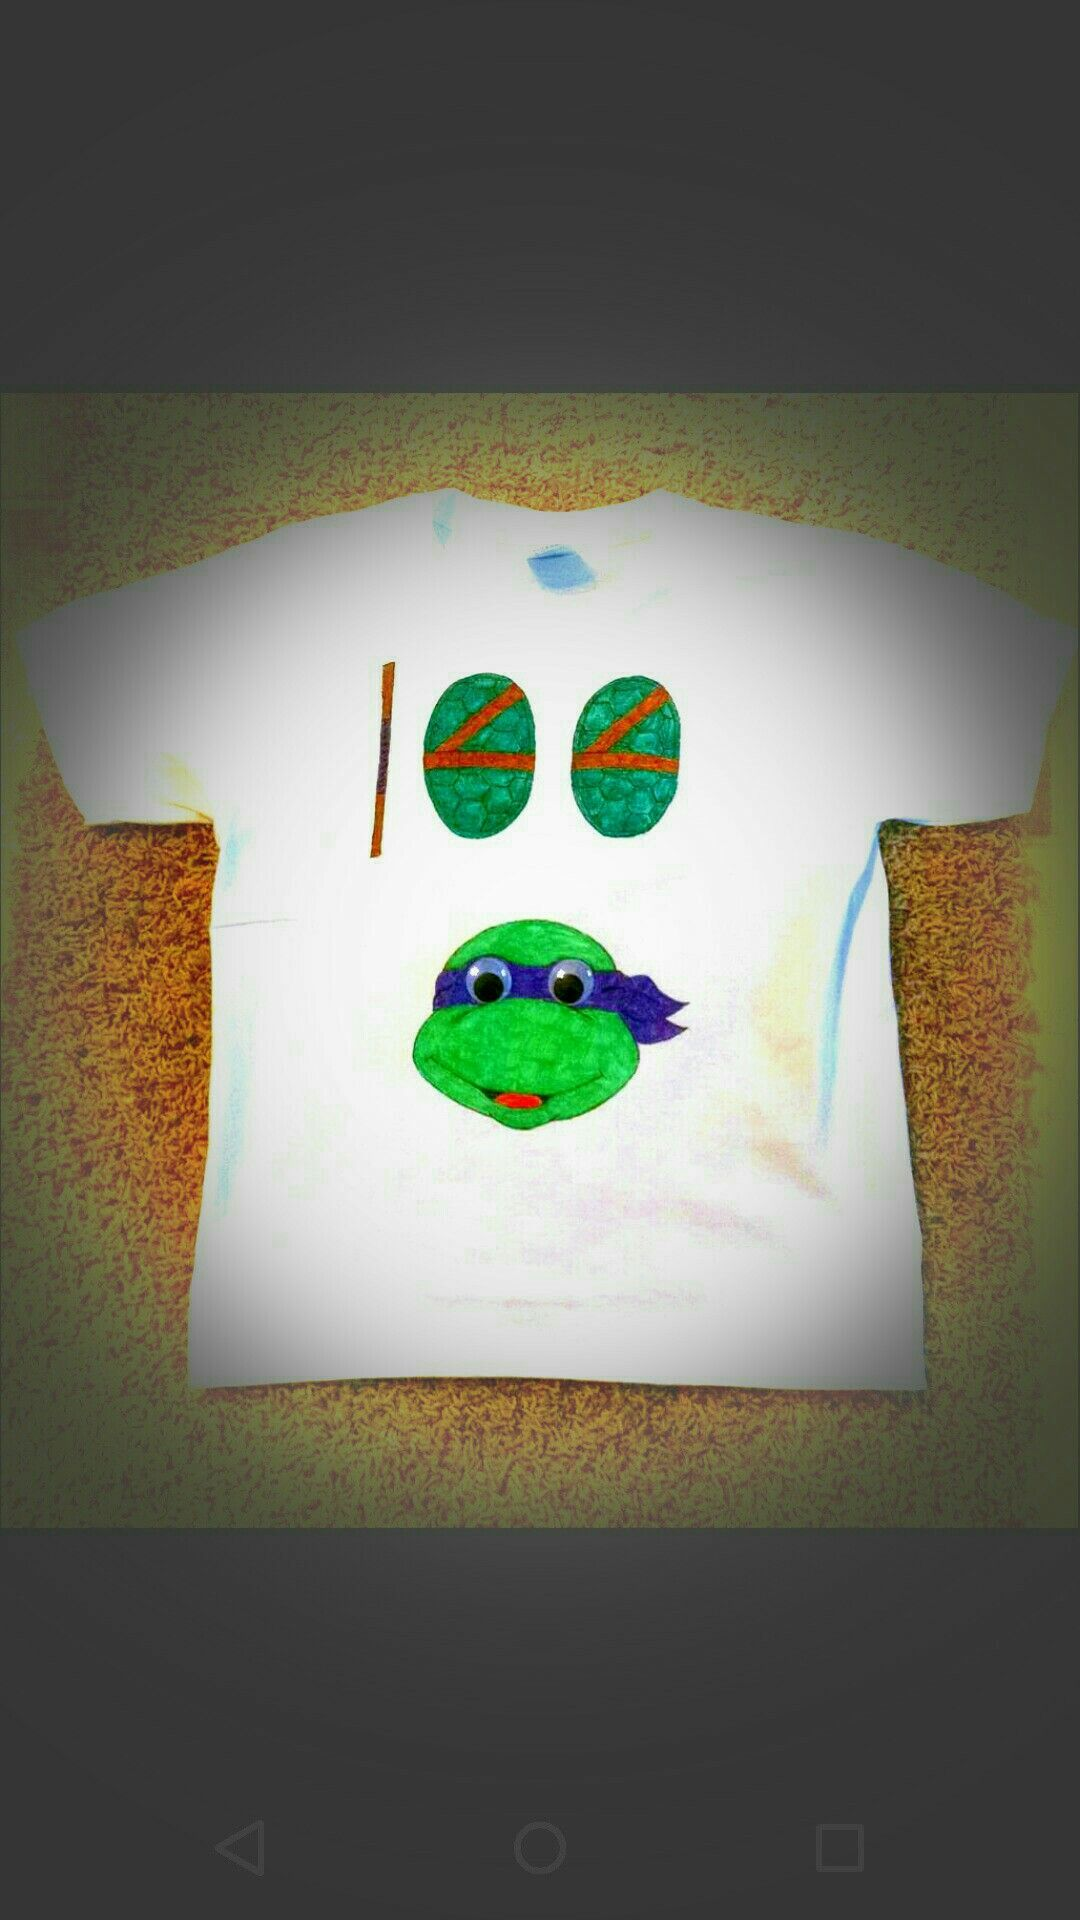 Teenage Mutant Ninja Turtle - 100th day of school T-shirt my daughter designed and painted.